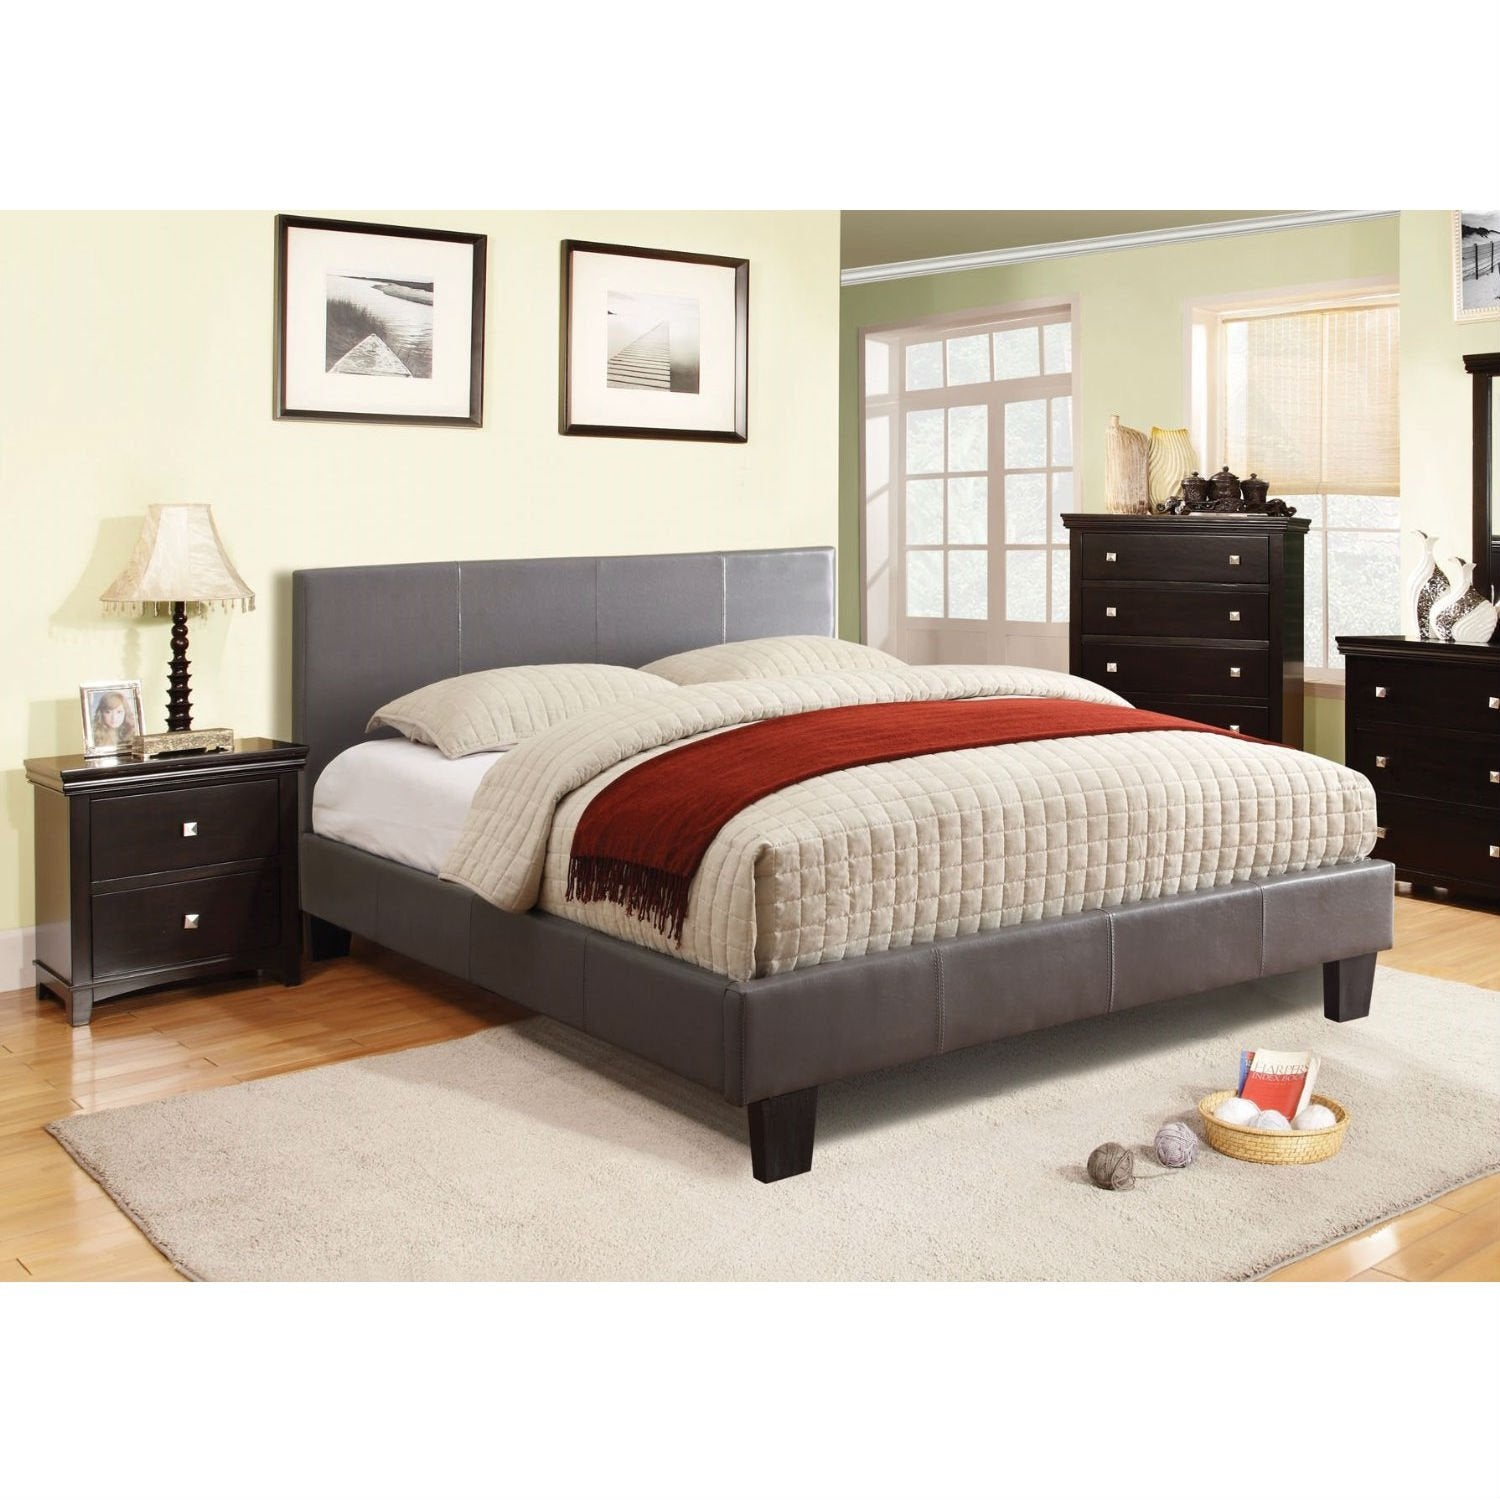 Queen size Platform Bed with Headboard Upholstered in Gray Faux Leather